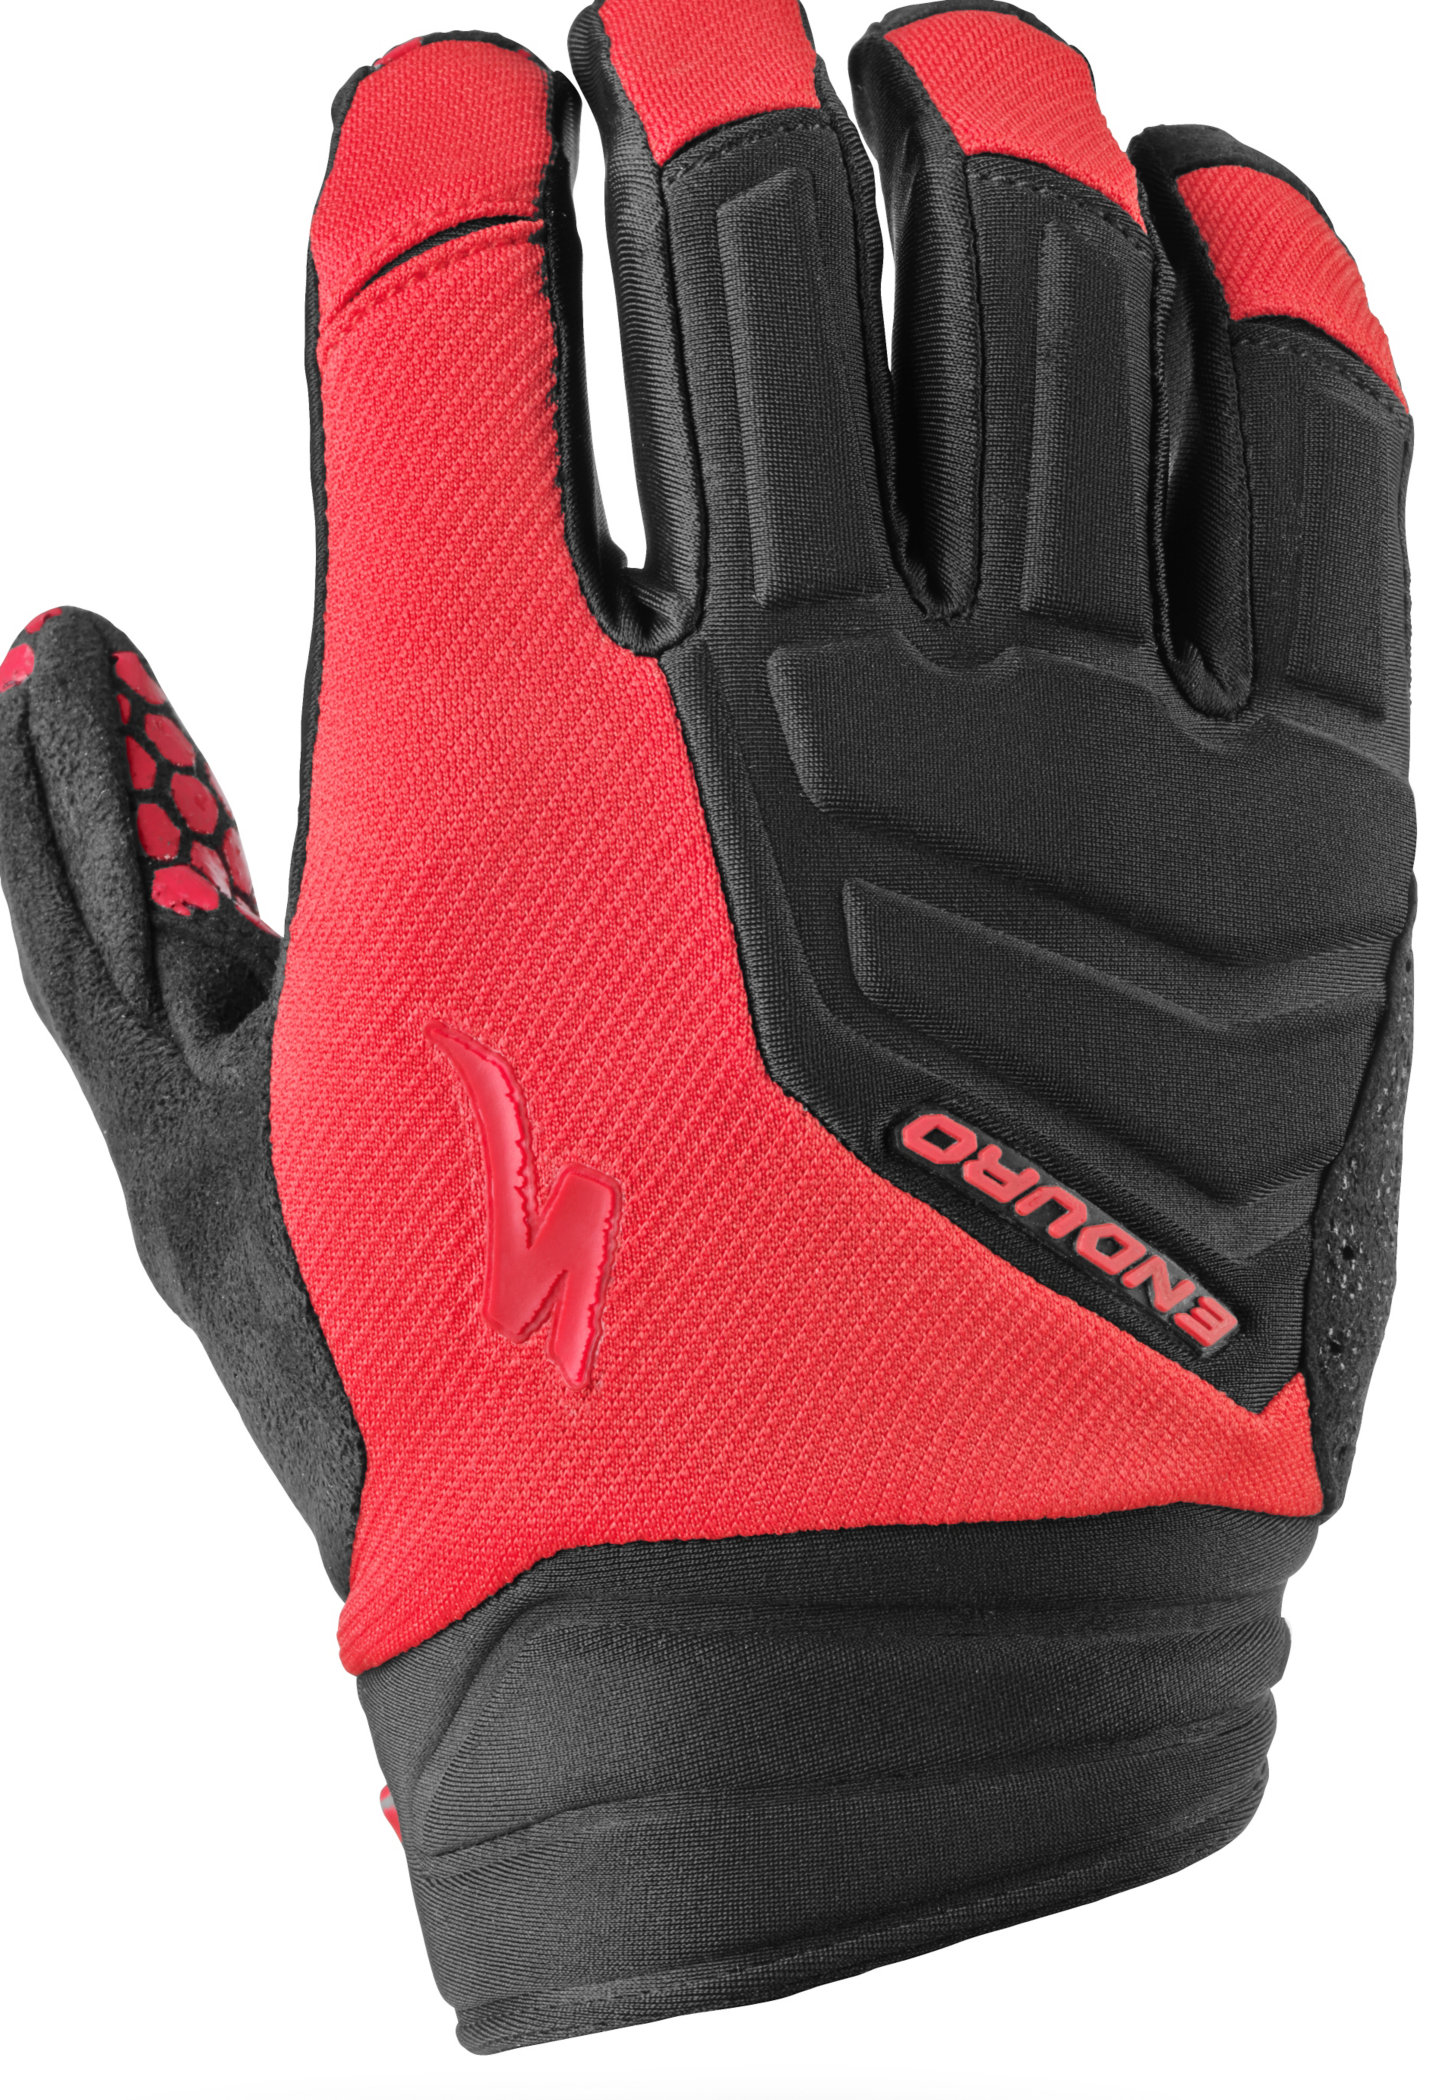 SPECIALIZED ENDURO GLOVE LF RED M - Alpha Bikes